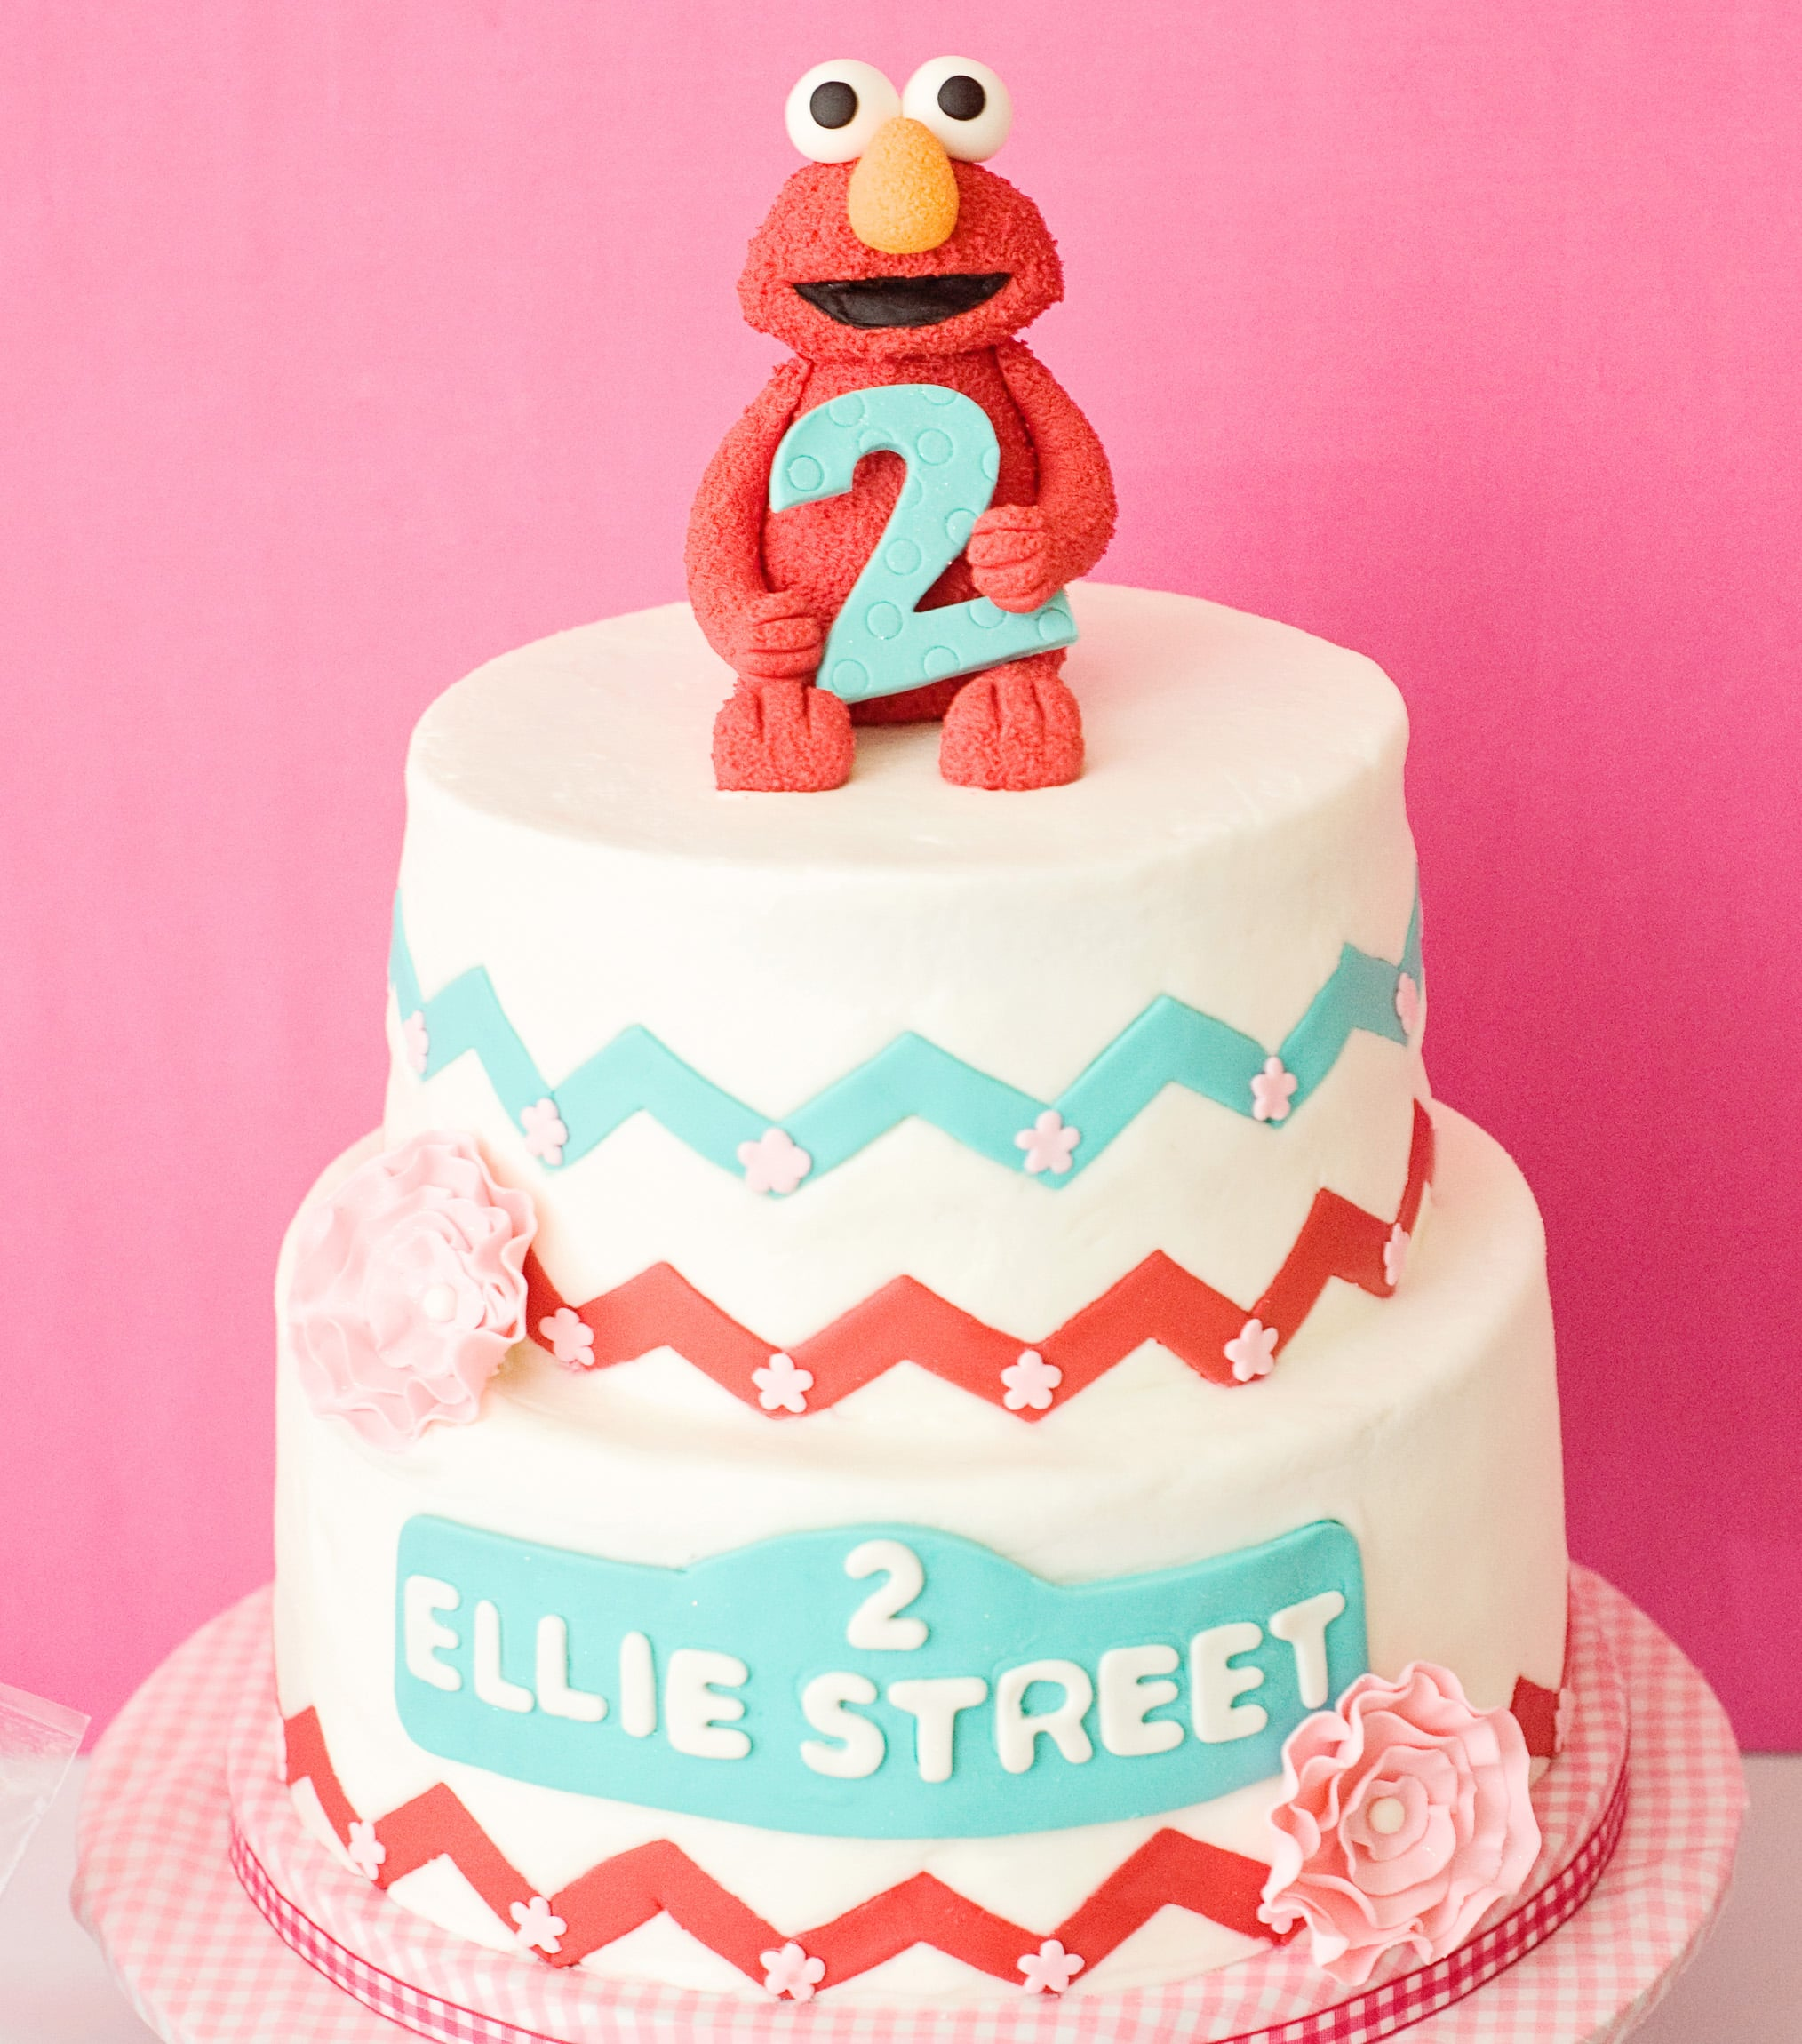 Cake Ideas For Toddler Girl Birthday : Elmo Cake 50 Beautiful Birthday Cake Ideas For Girls ...